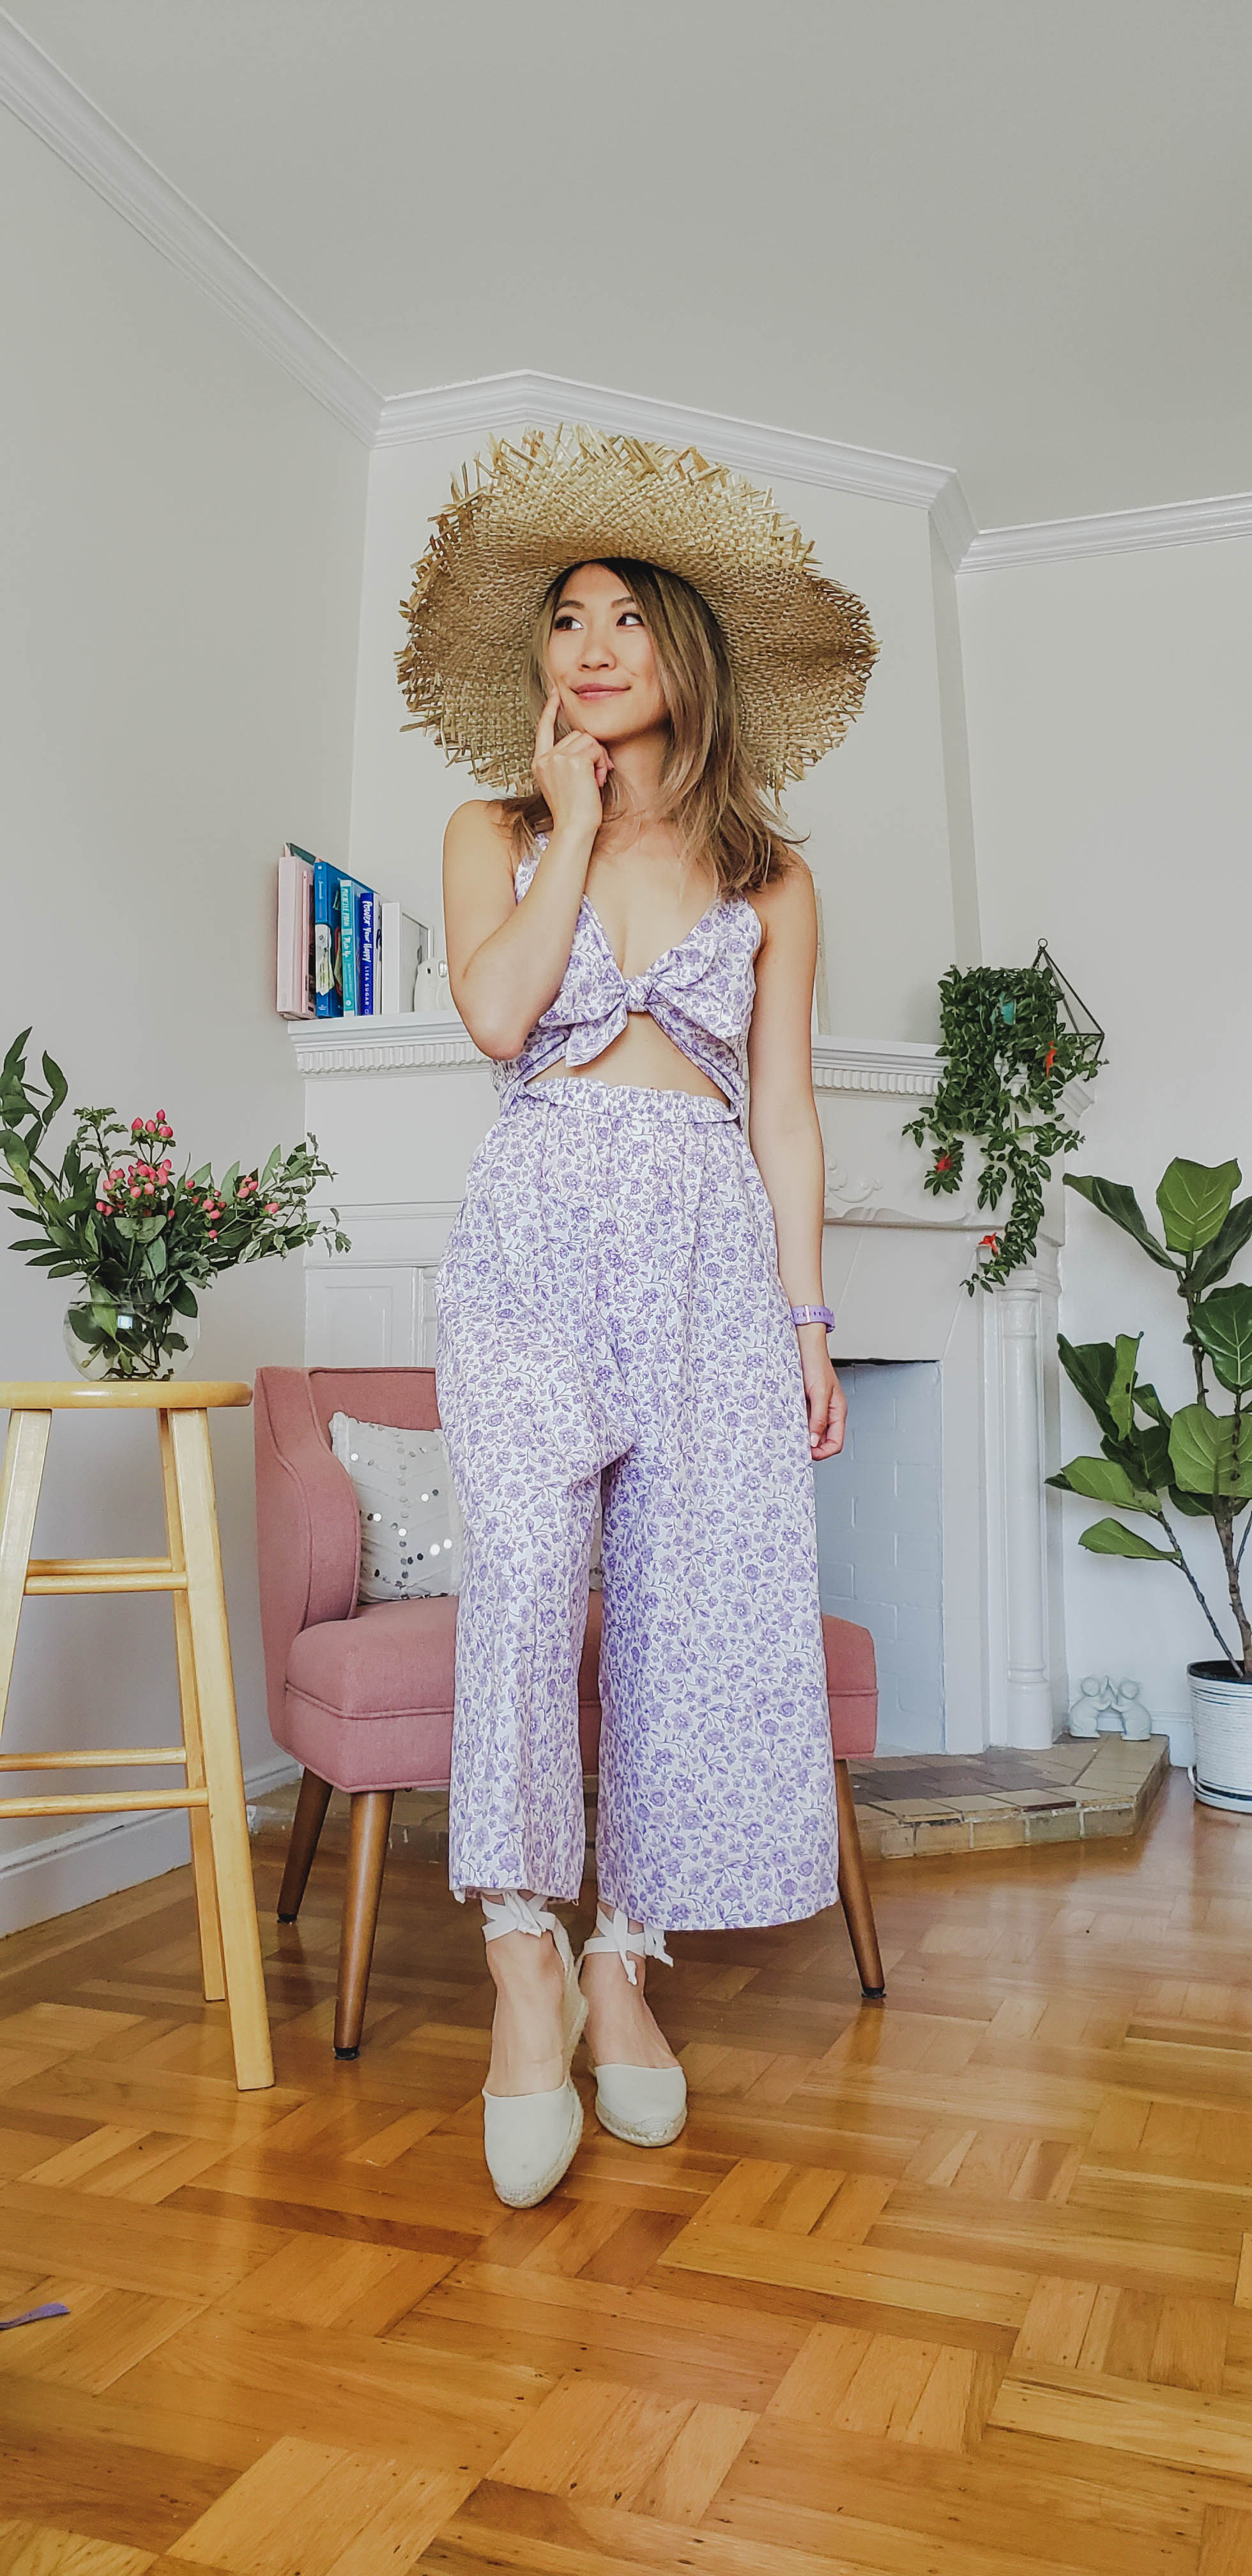 FashionbyAlly-How-to-style-a-jumpsuit6.jpg